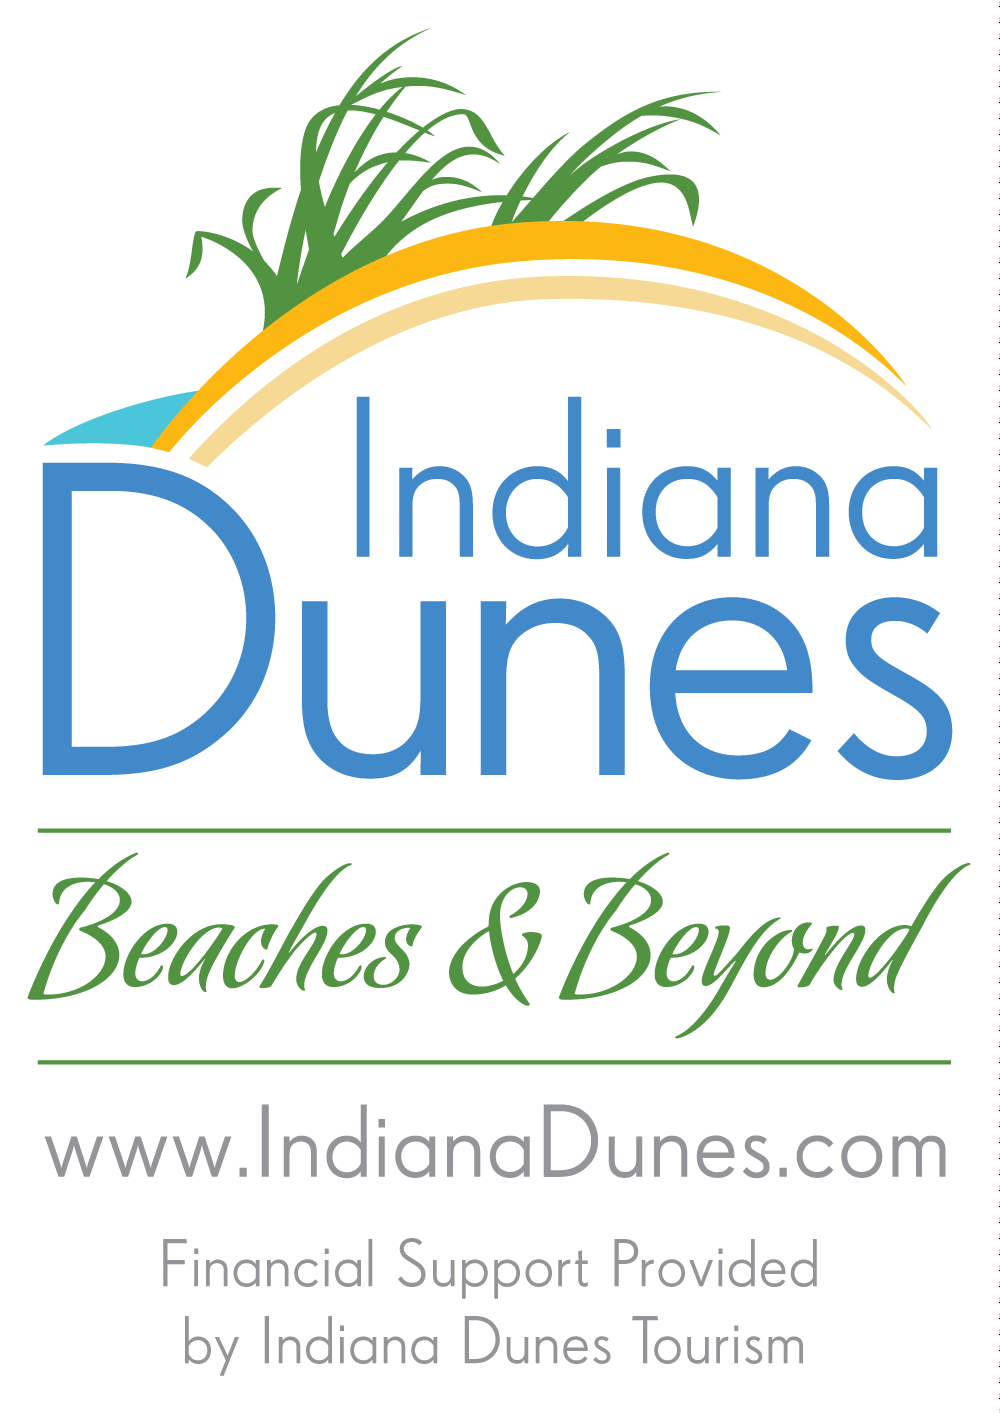 indiana dunes tourism logo grants